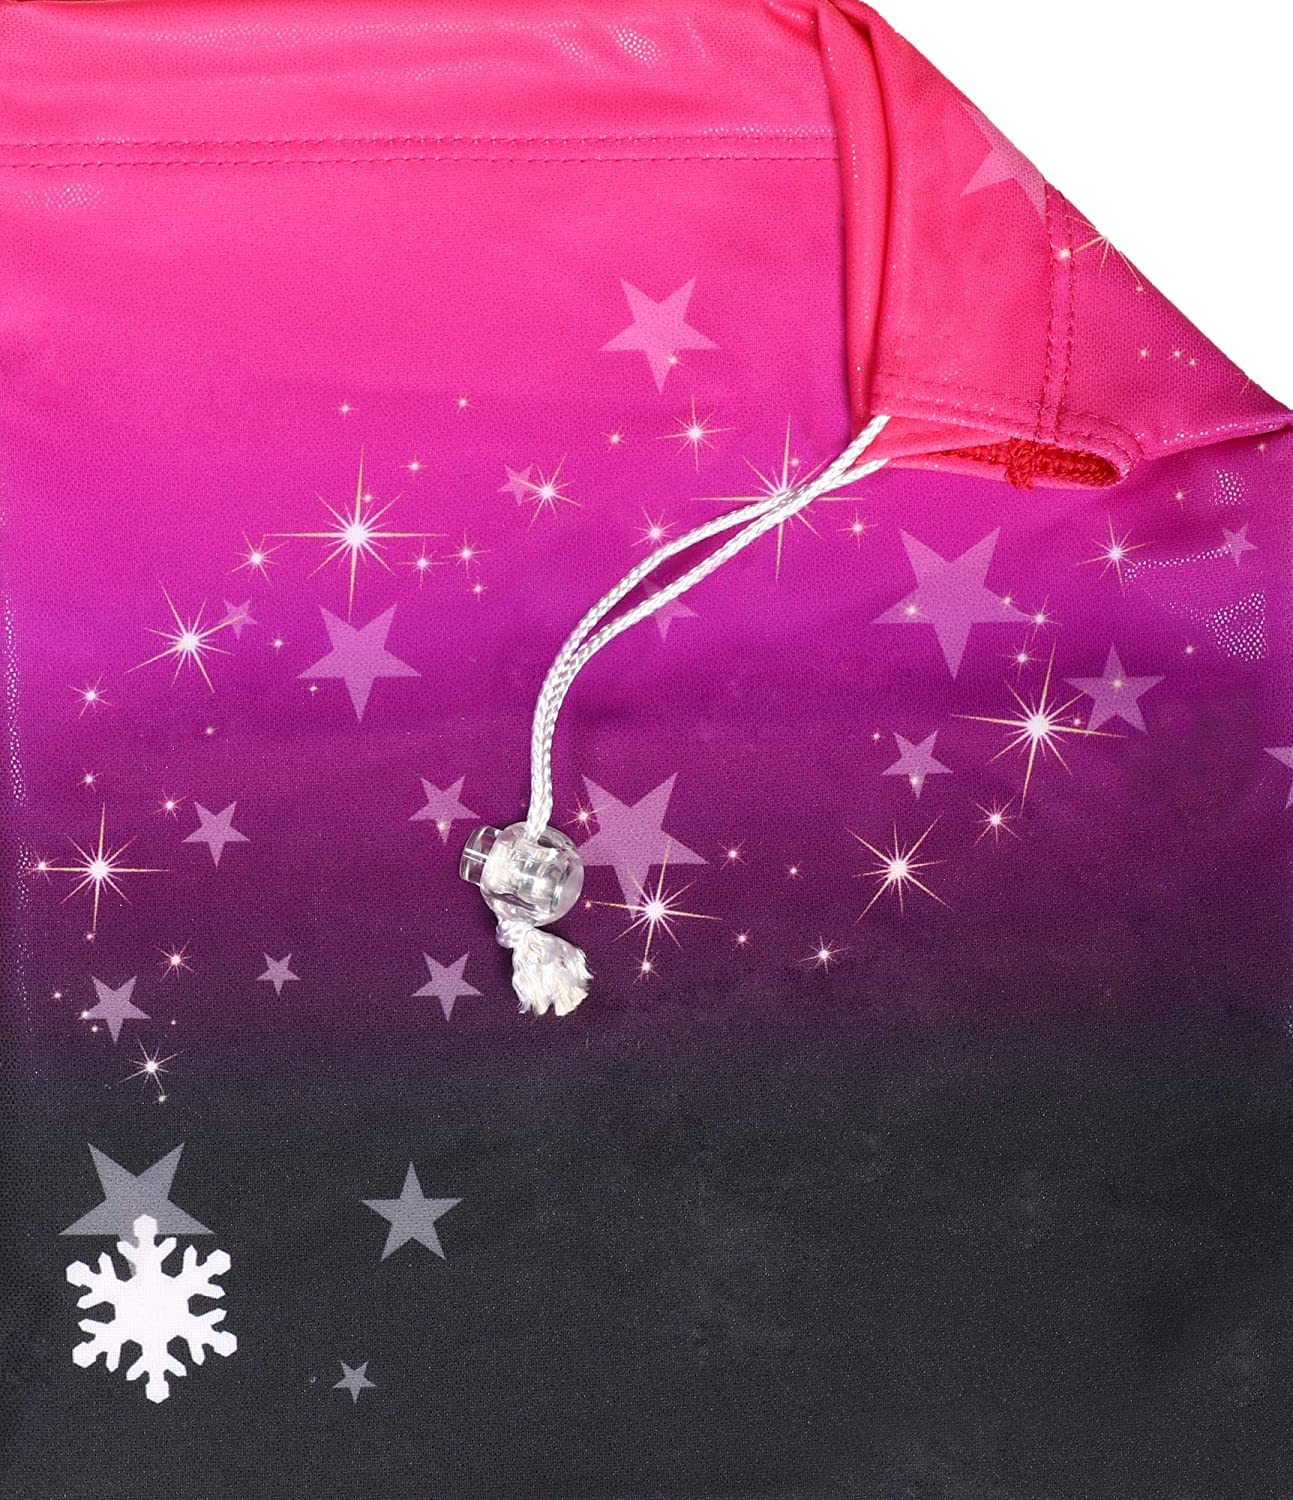 Snowflake Designs Fame Gymnastics Grip Bag in Pink Can be Customized with Name